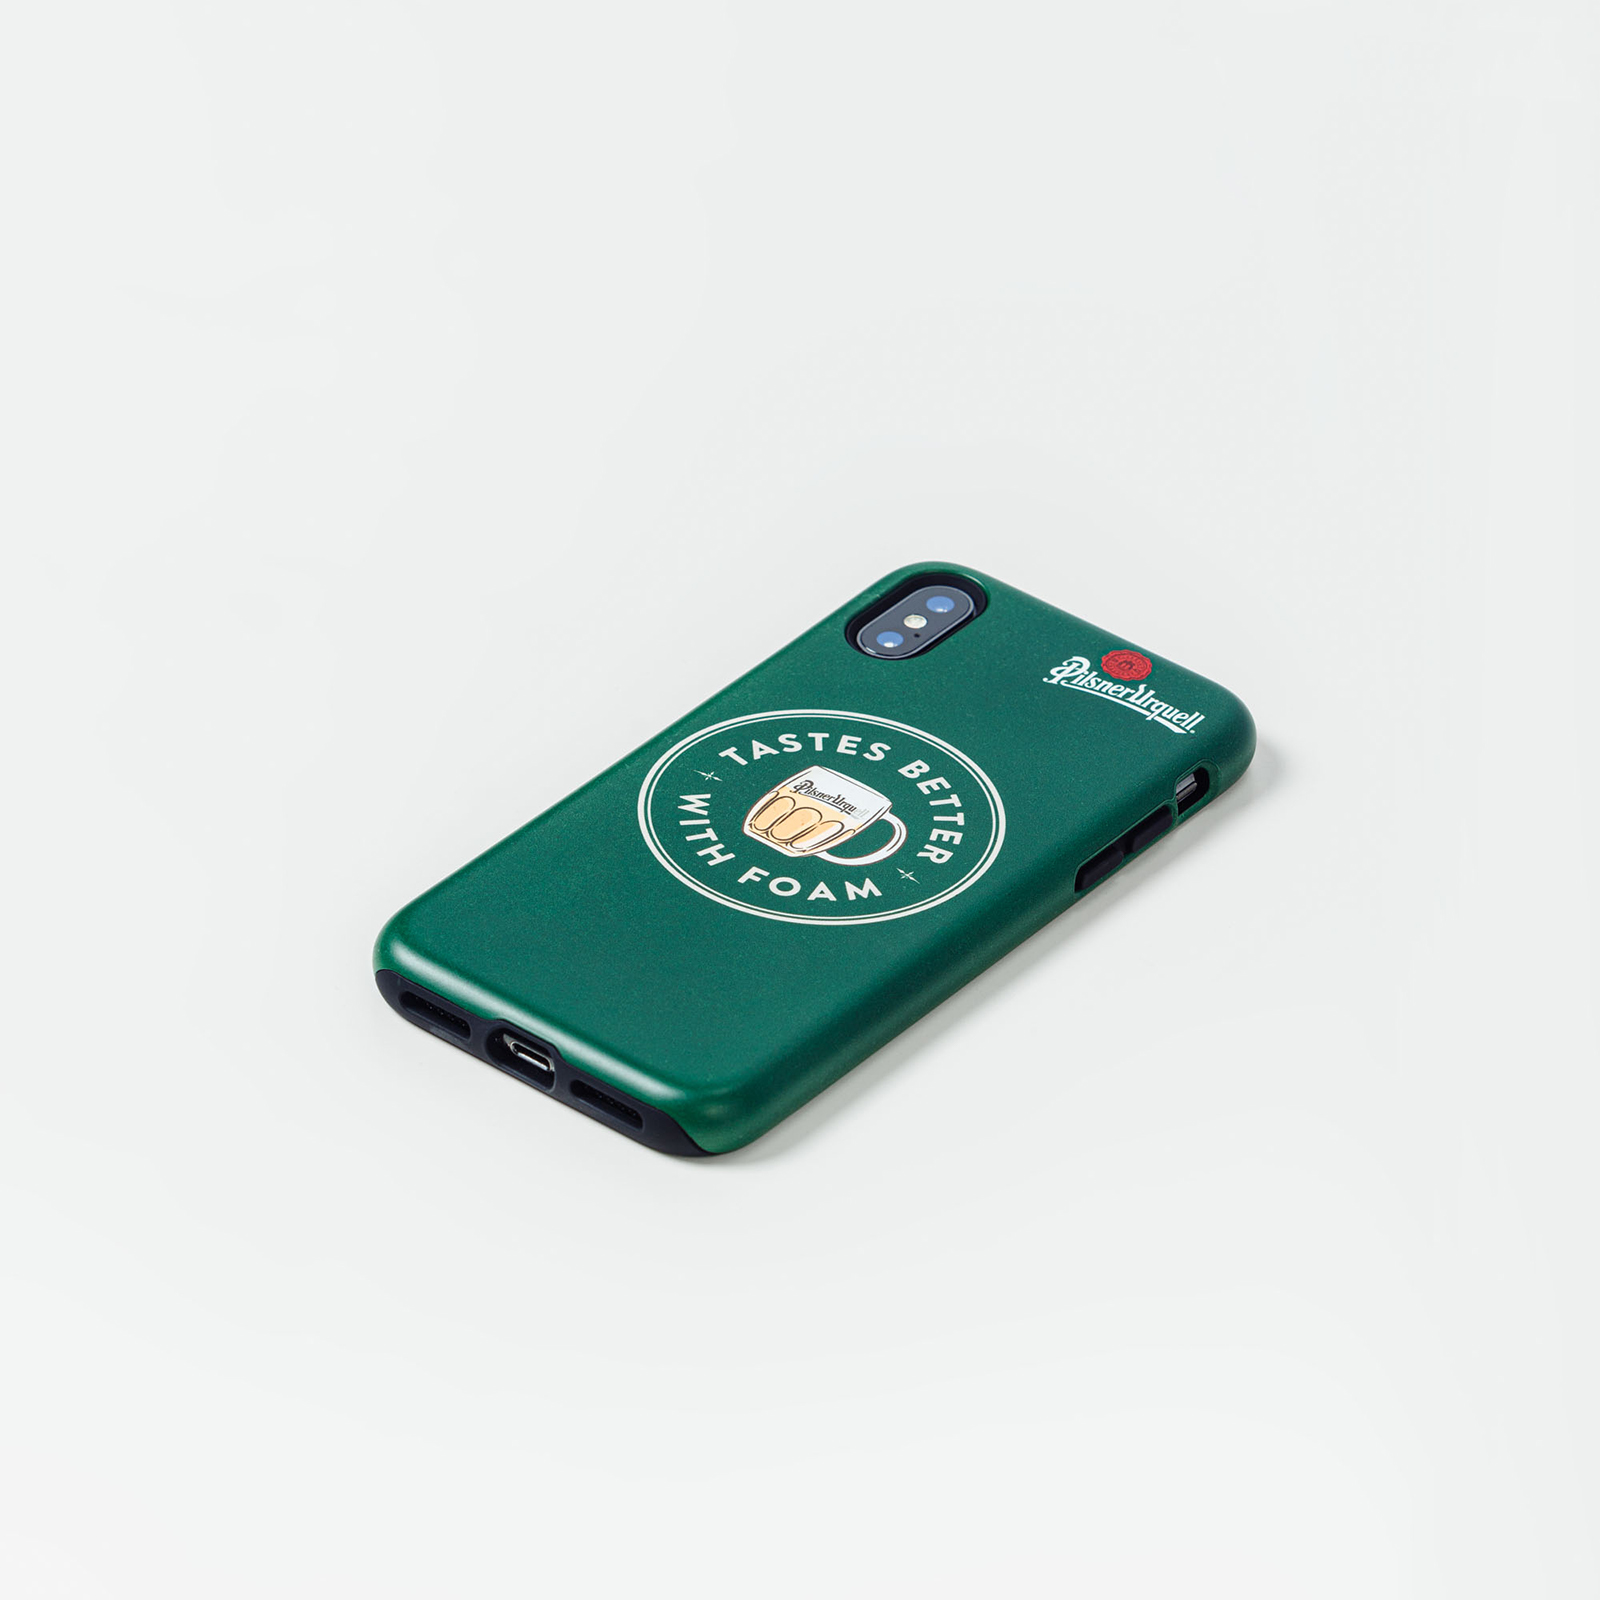 Pilsner Urquell TOUGH mobile phone case - green